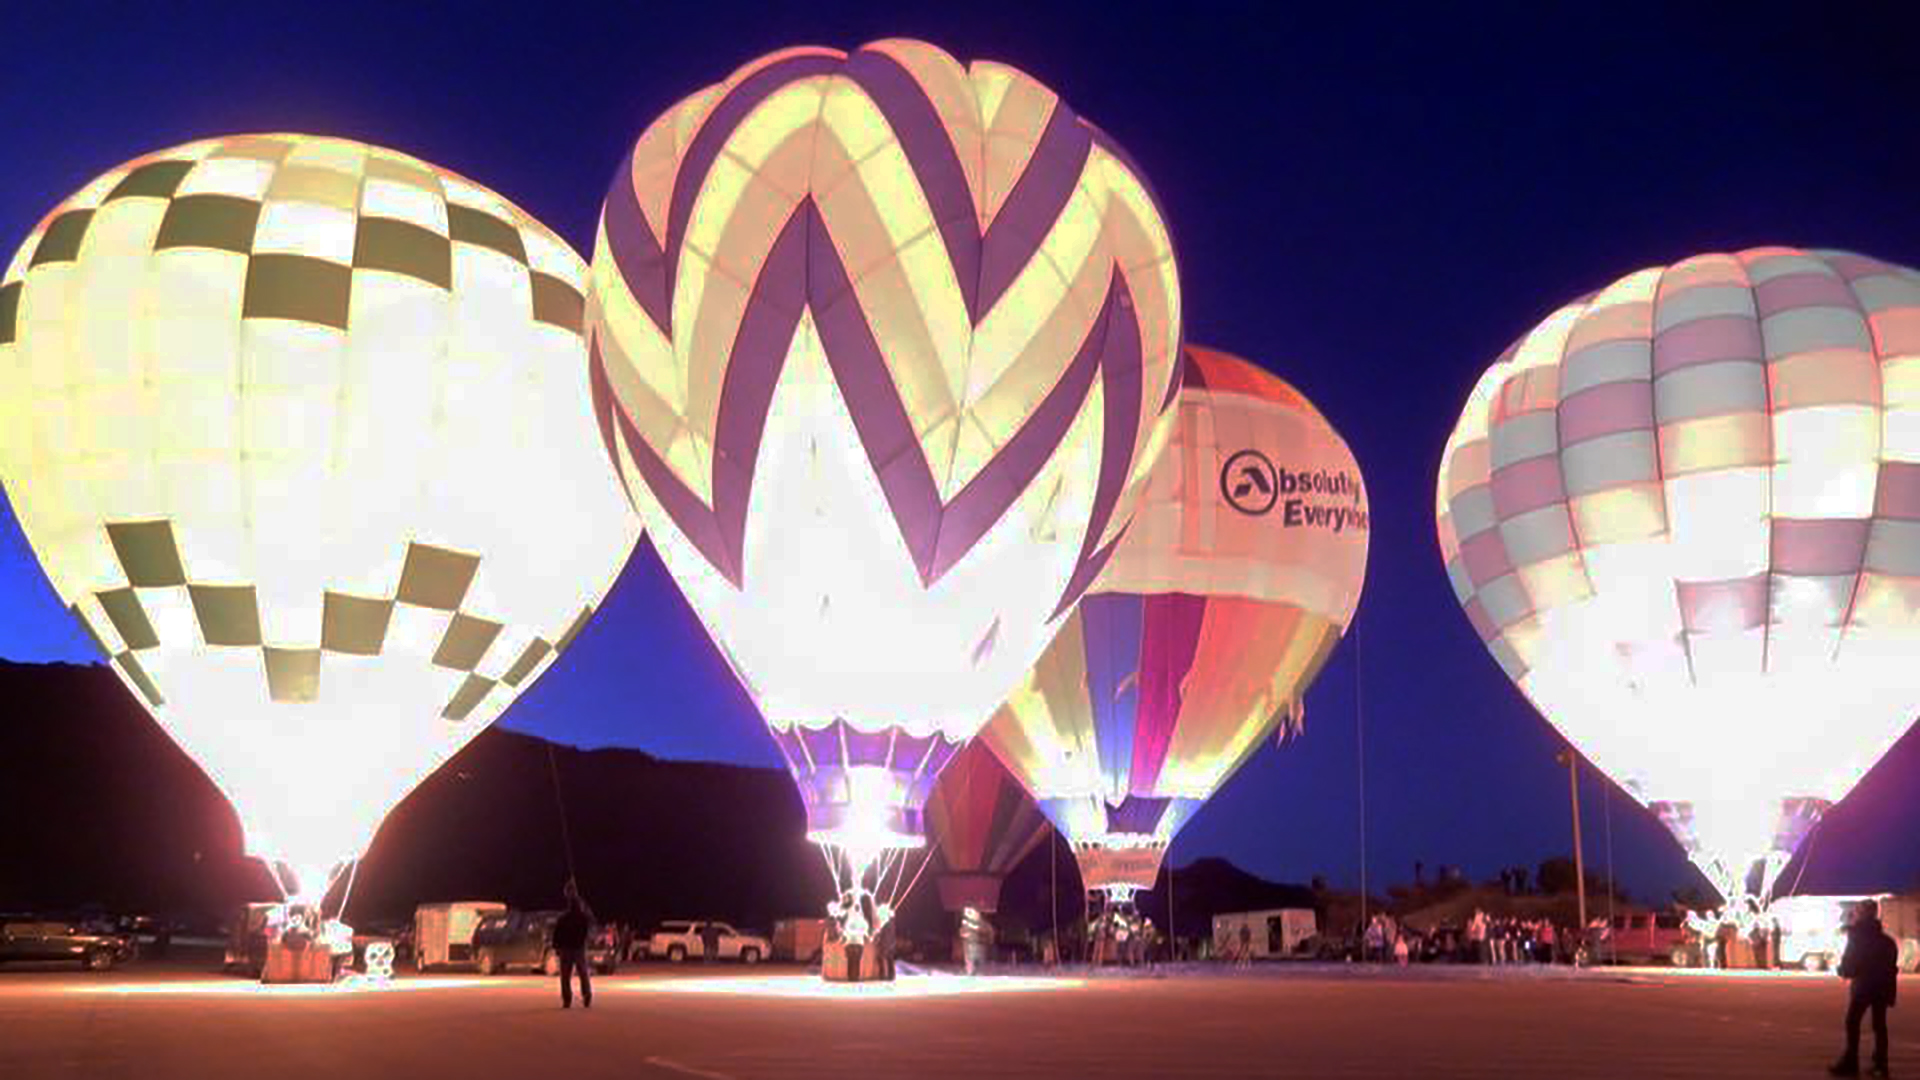 Hot air balloonists plan a Christmas glow in Palo Duro Canyon event